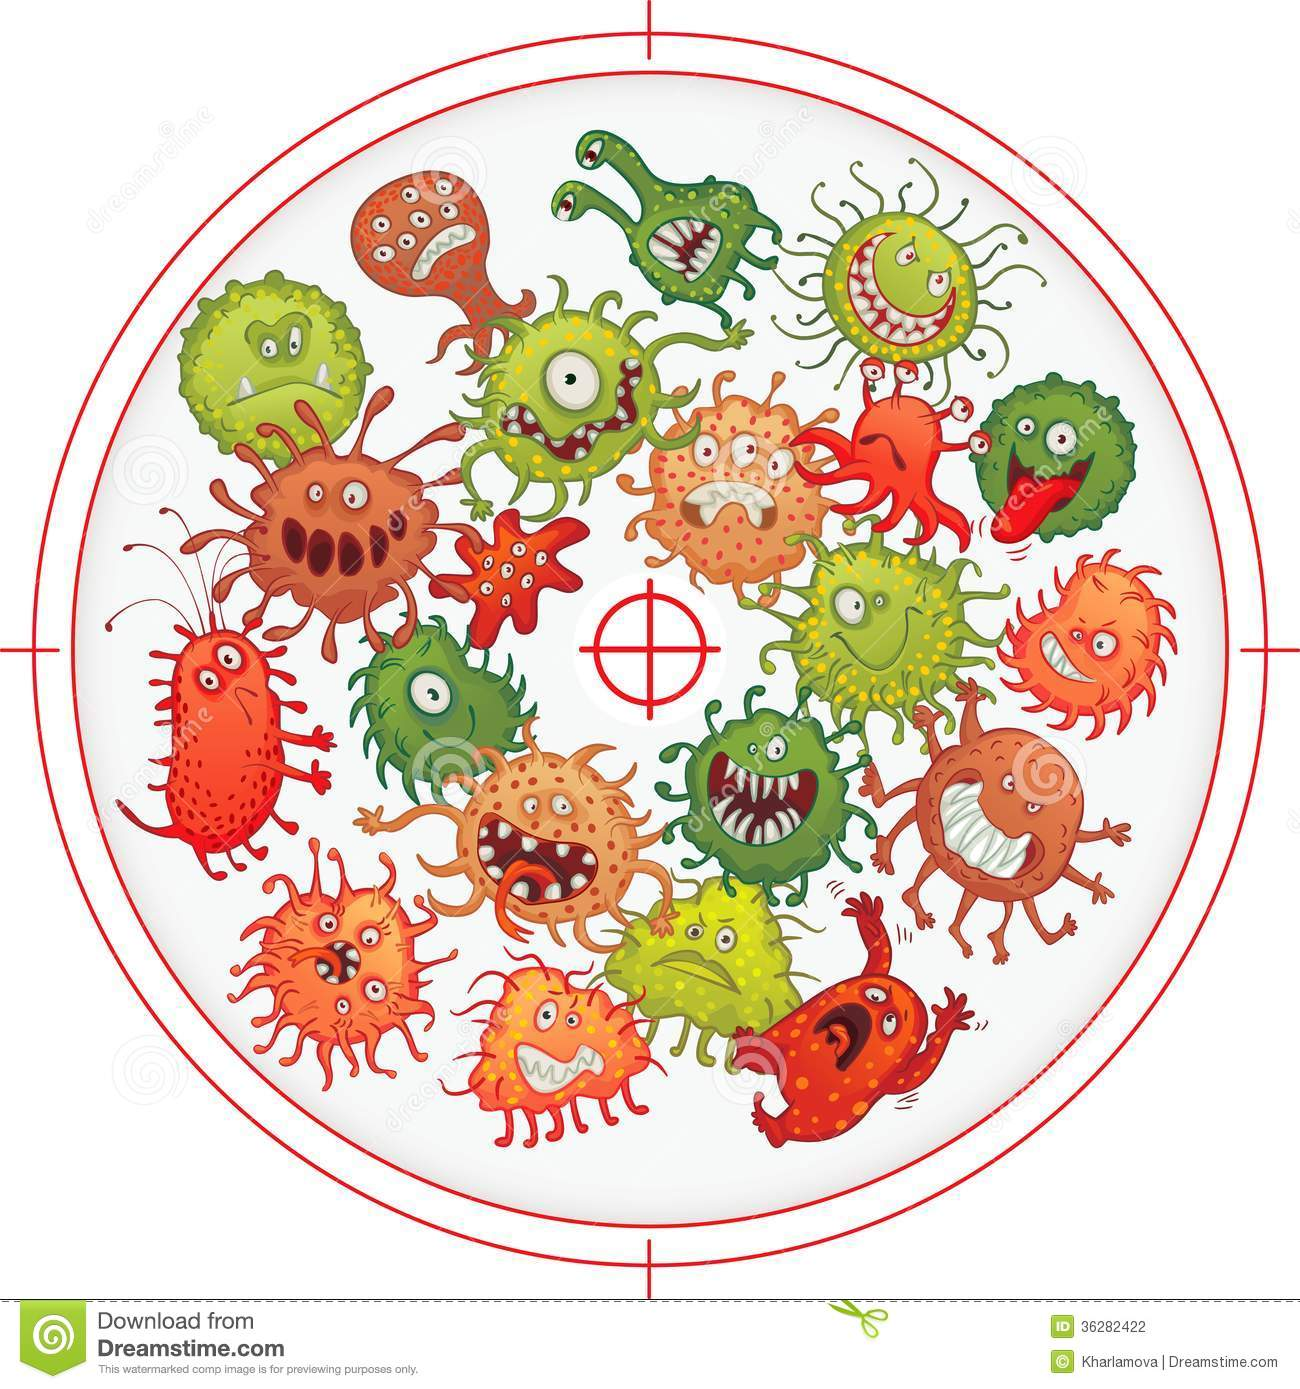 Germs and bacteria at gunpoint vector illustration isolated on white